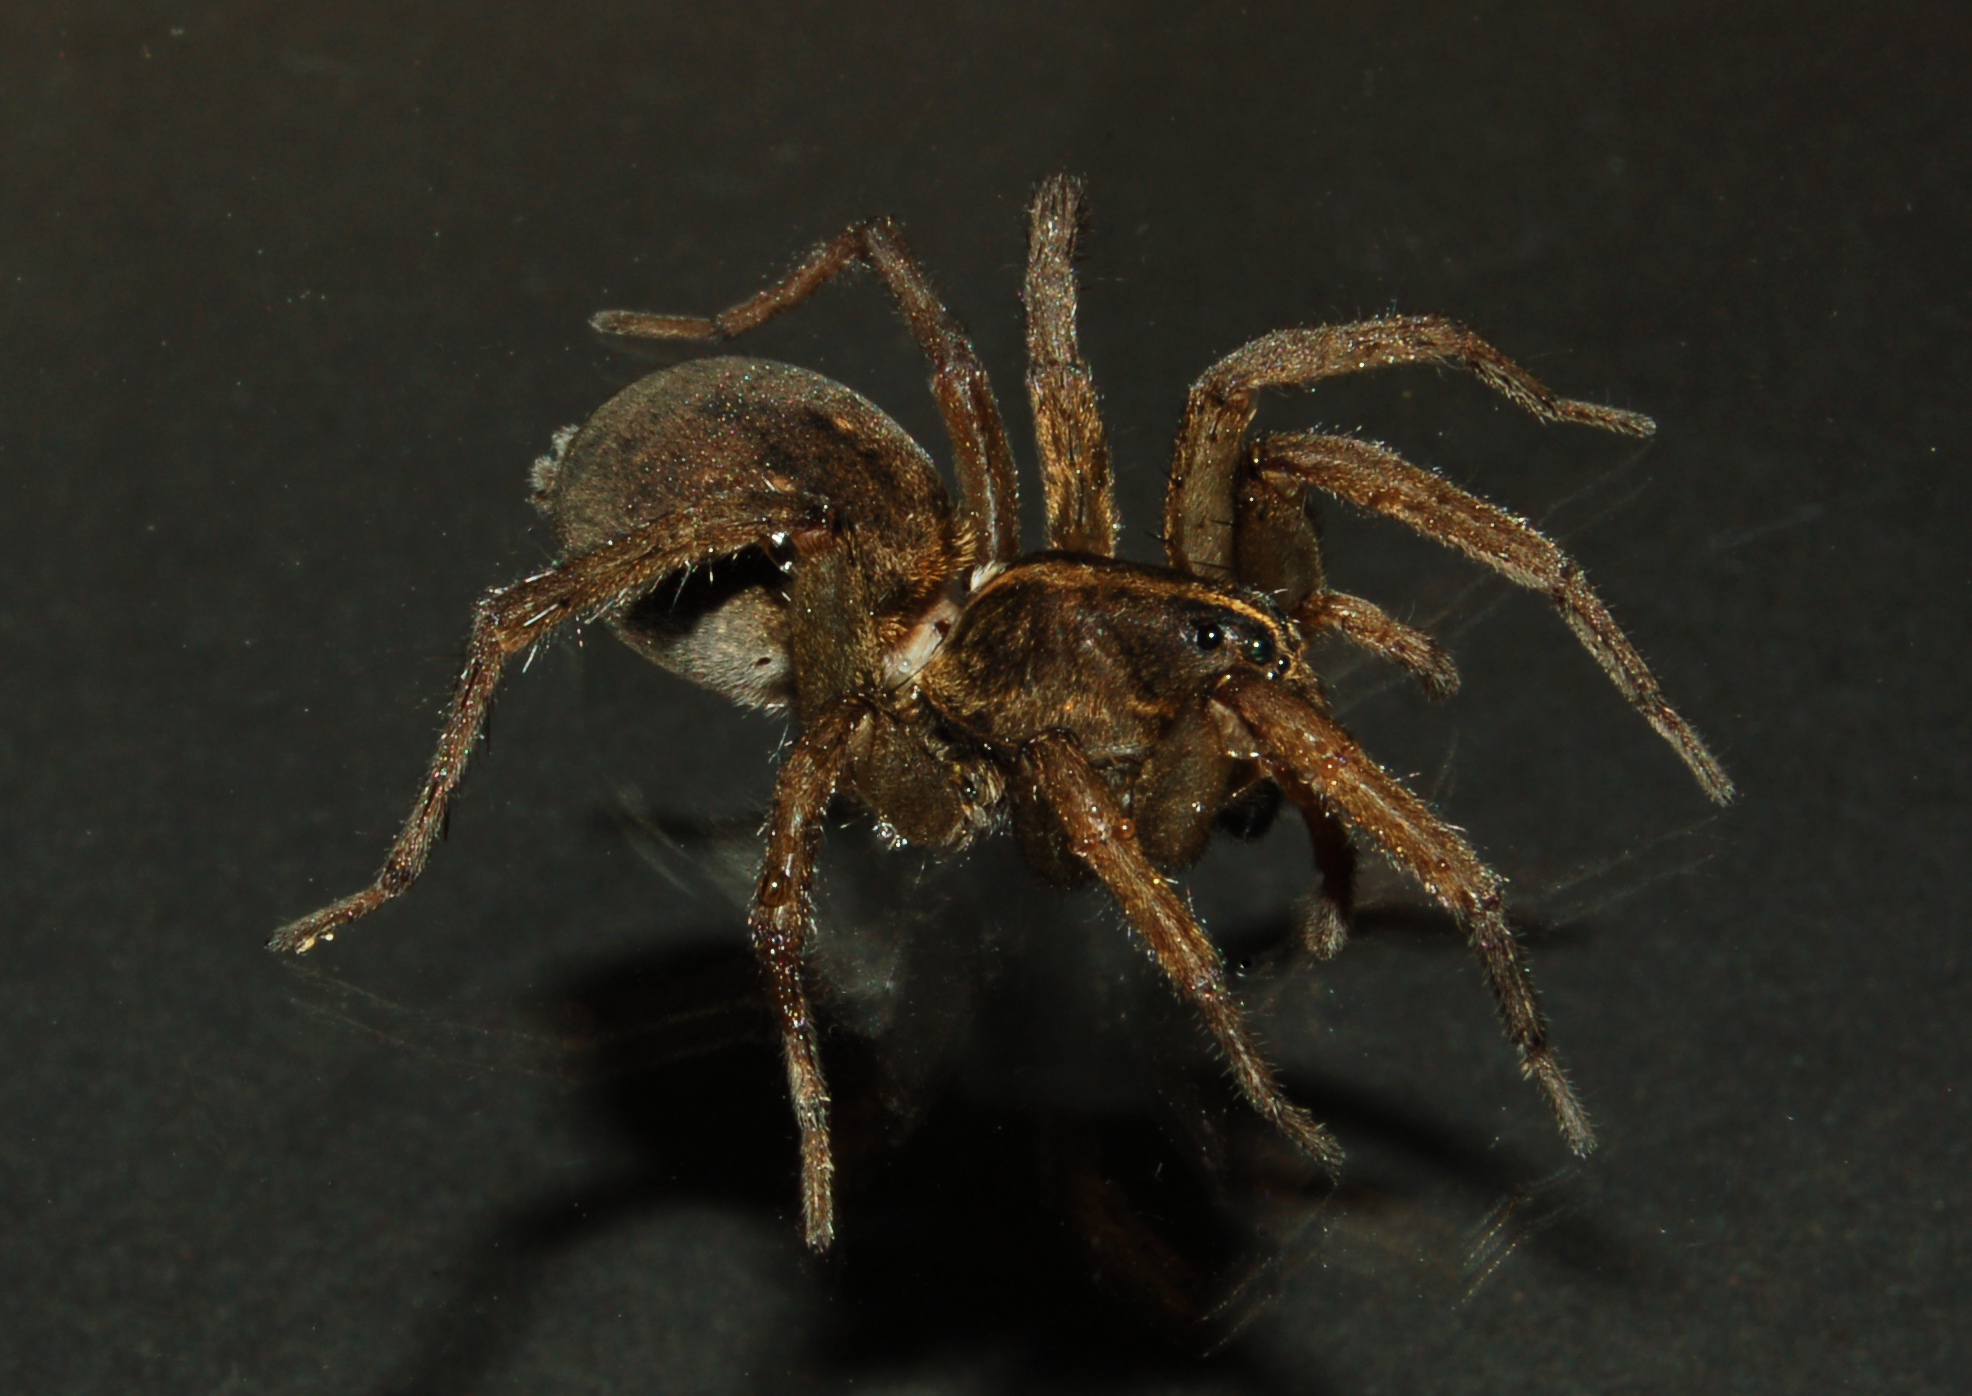 big and scary spiders | spidersrule